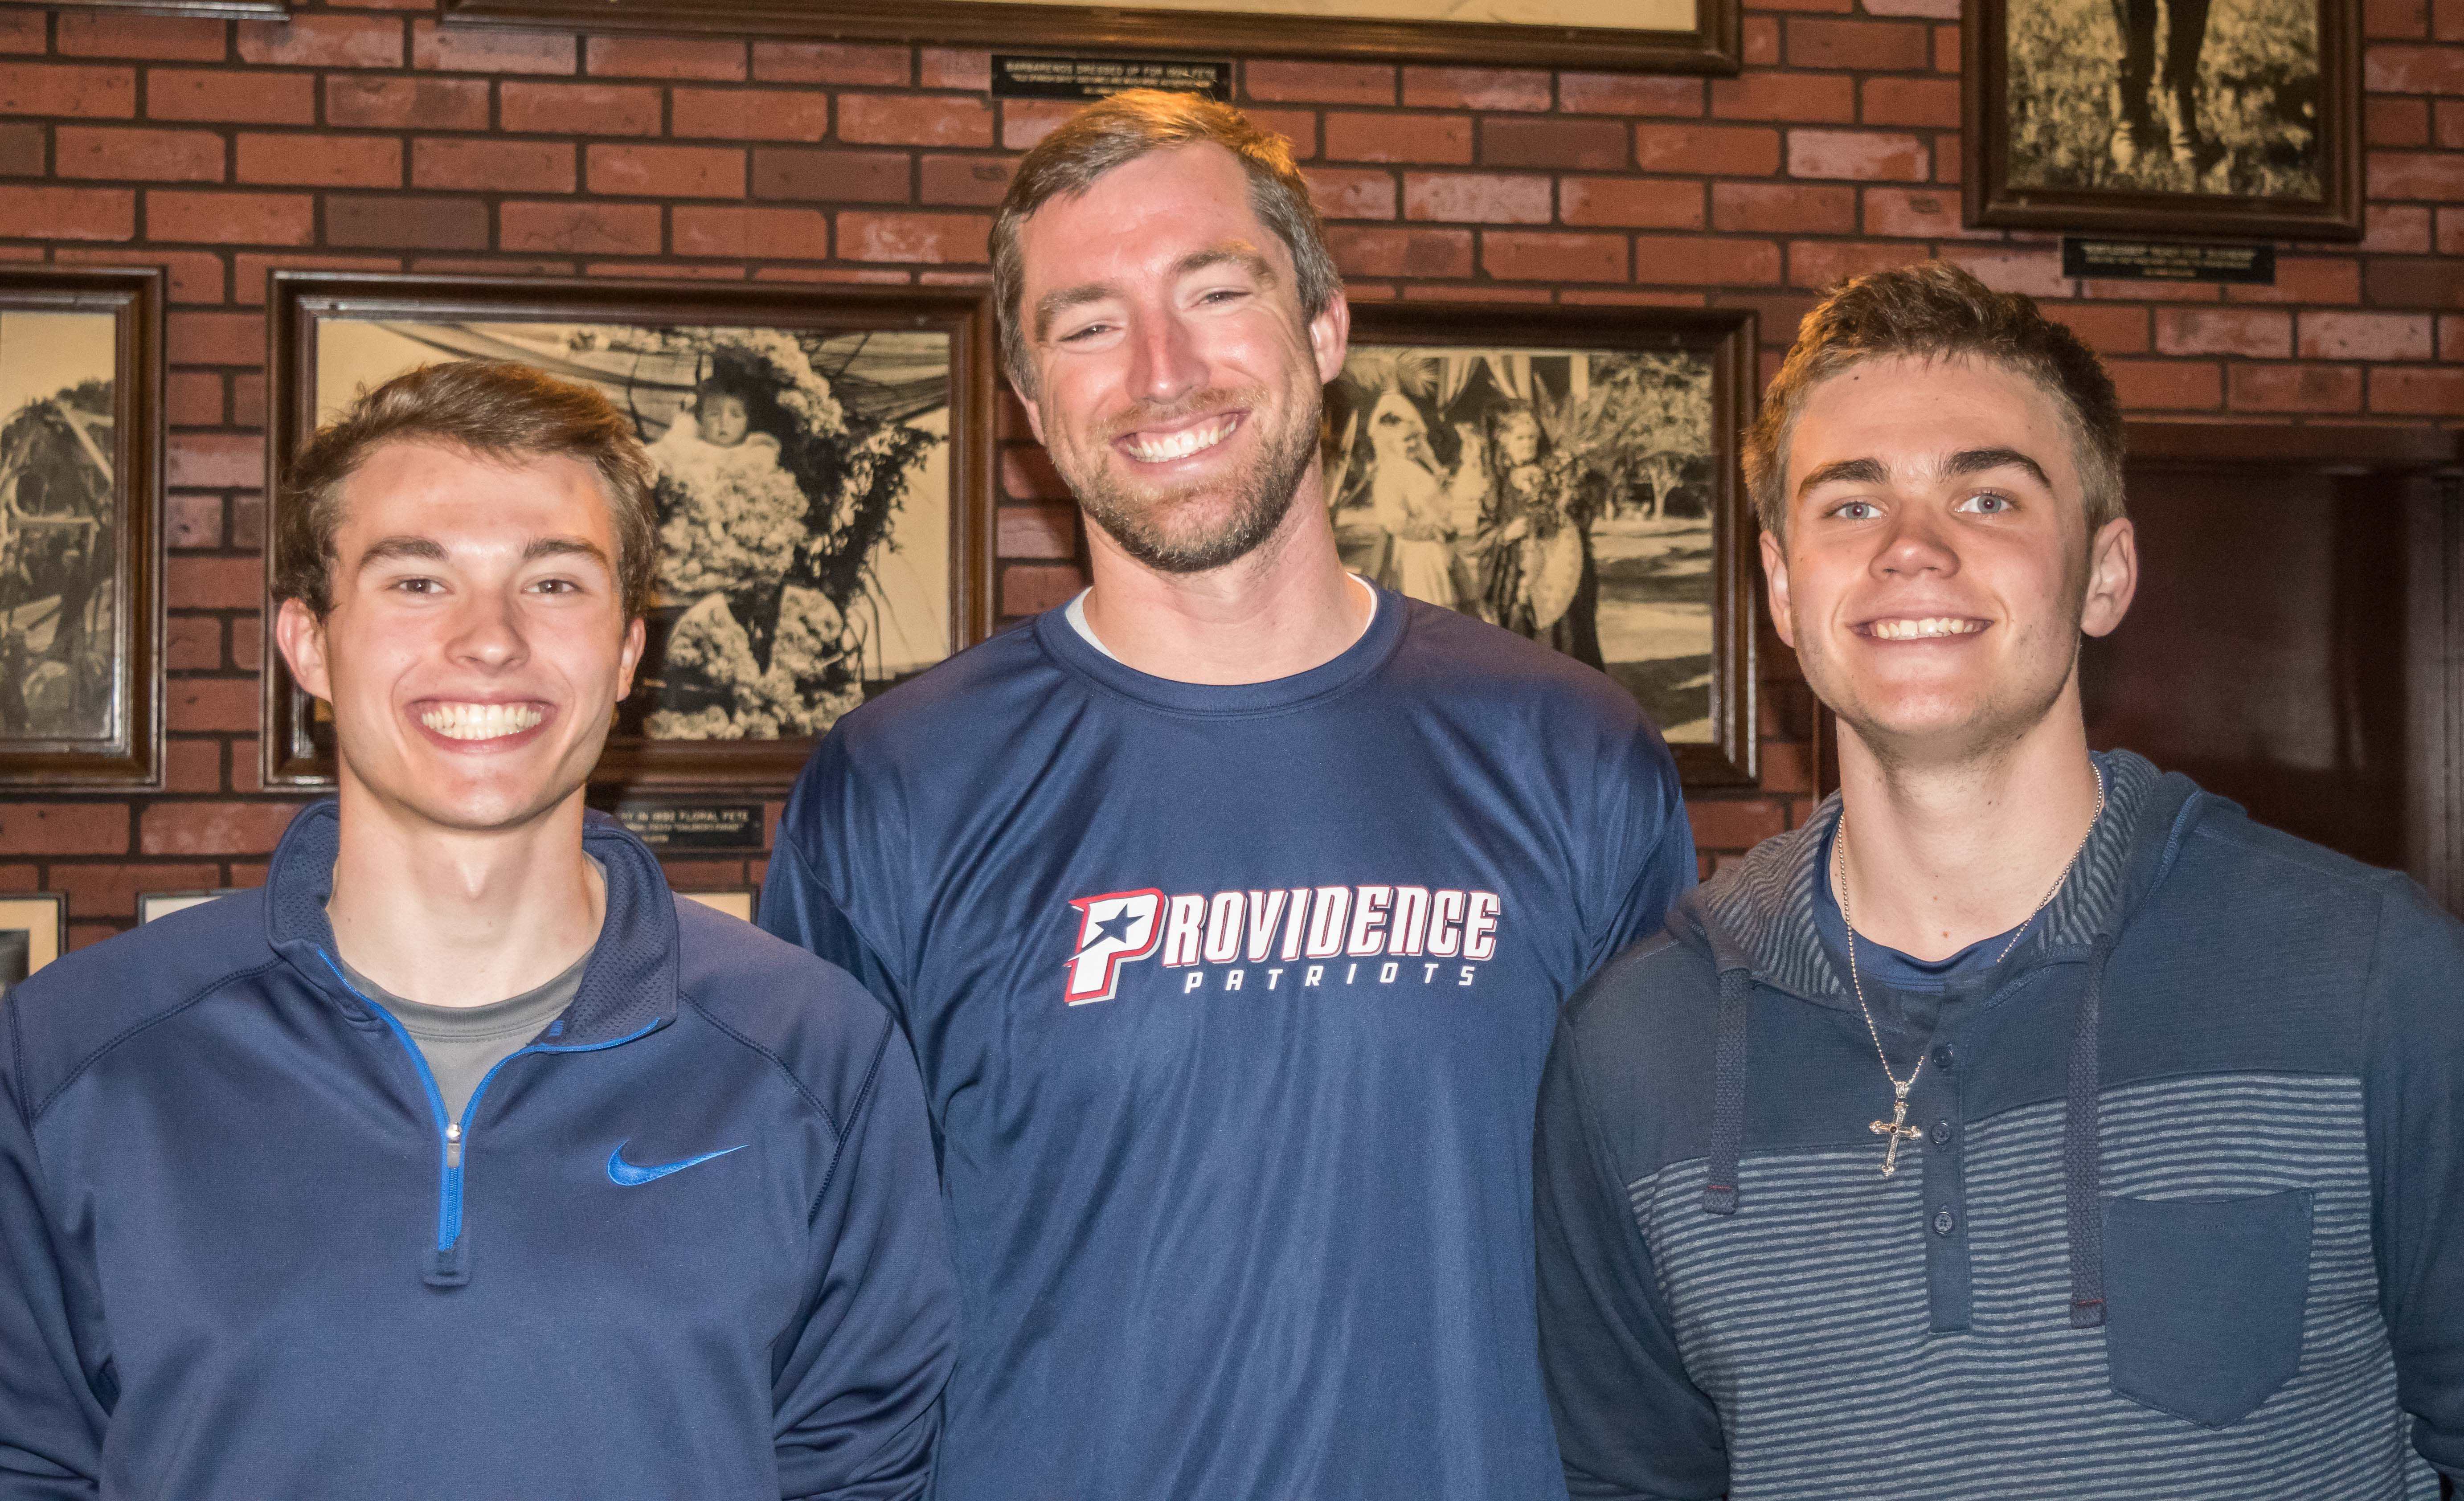 Providence's Caleb Jones, coach Steve Stokes, and Ricky Beebe celebrated a strong season in which the Patriots reached the quarterfinals of CIF play